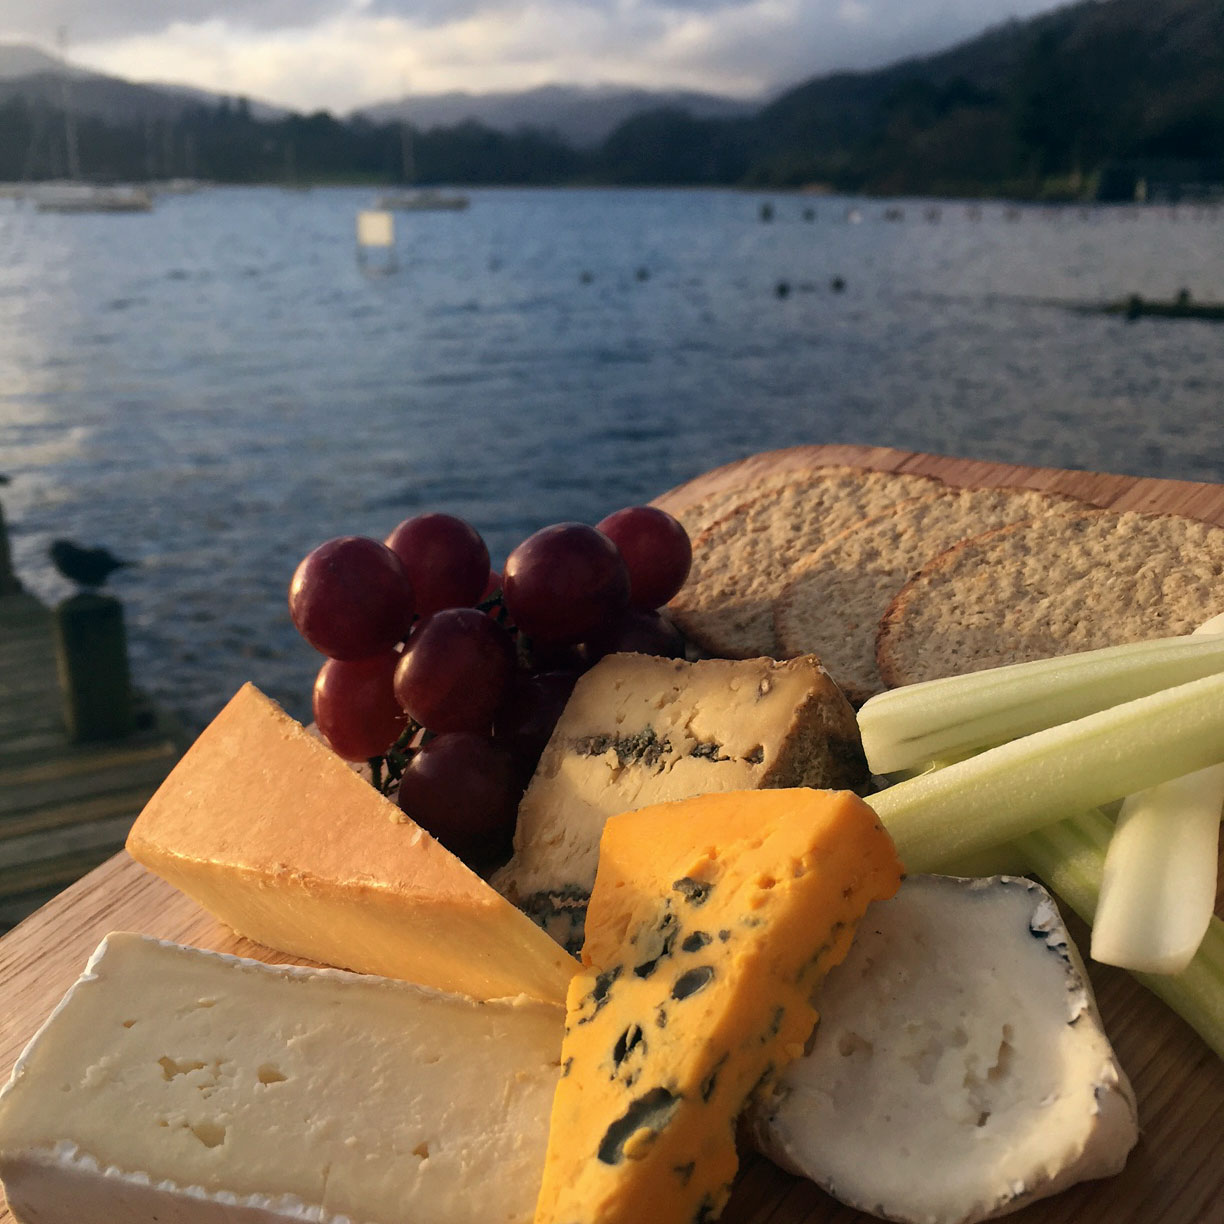 Enjoy Waterhead's festive cheeseboard with fantastic views over Lake Windermere